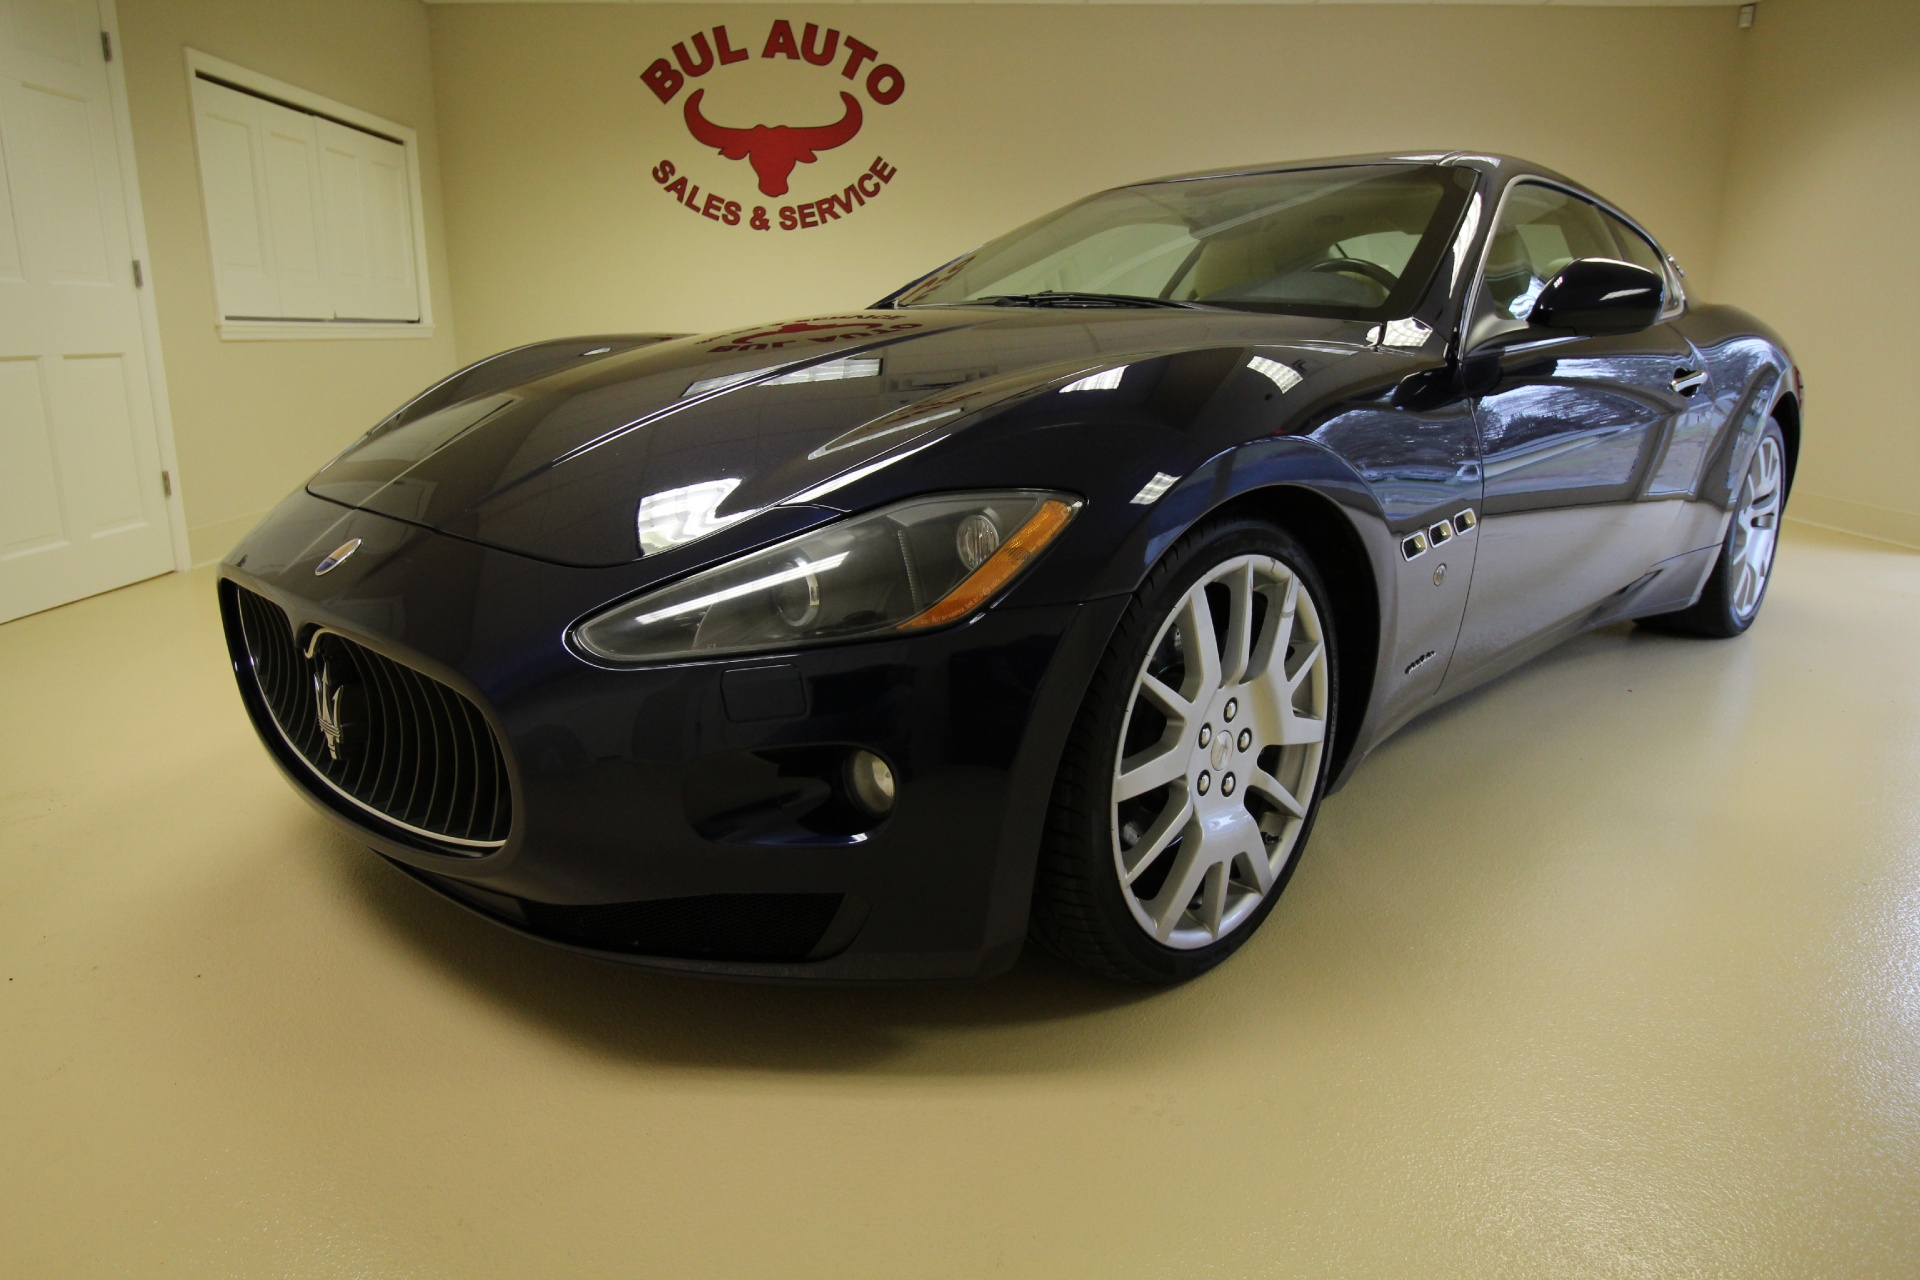 2008 maserati granturismo coupe super clean 20in birdcage. Black Bedroom Furniture Sets. Home Design Ideas